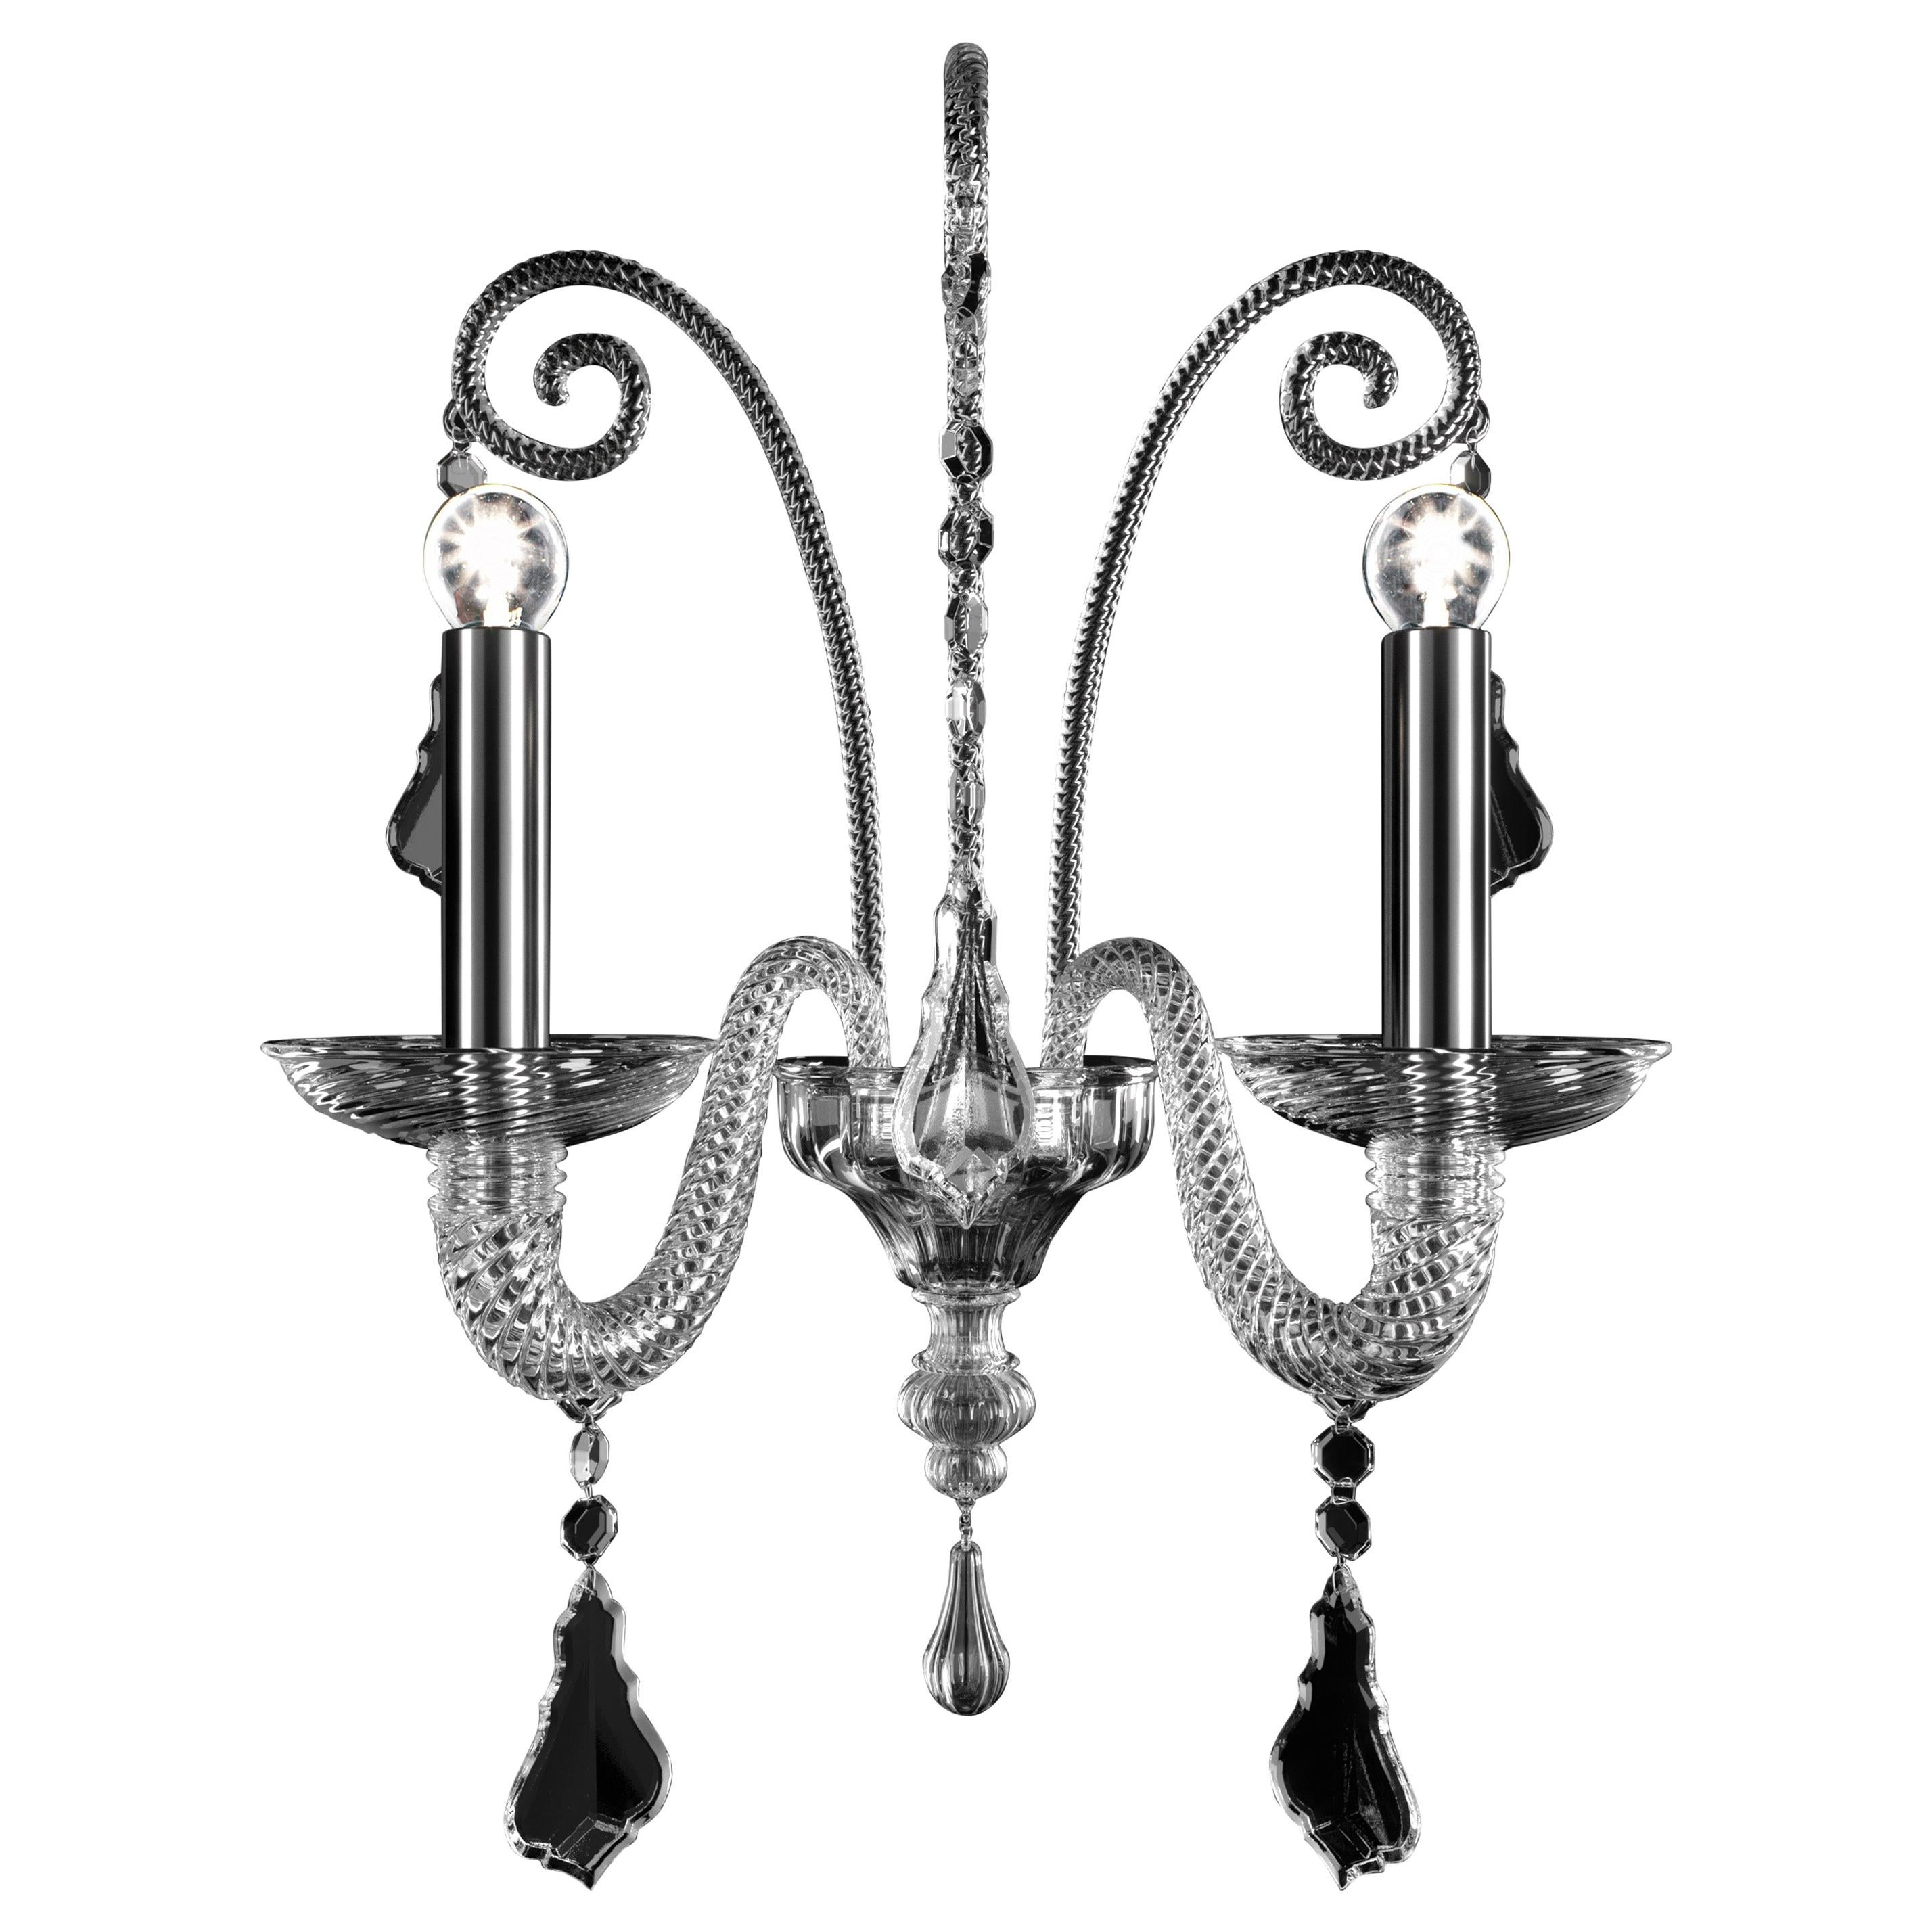 Izmir 5555 02 Wall Sconce in Glass, by Barovier&Toso